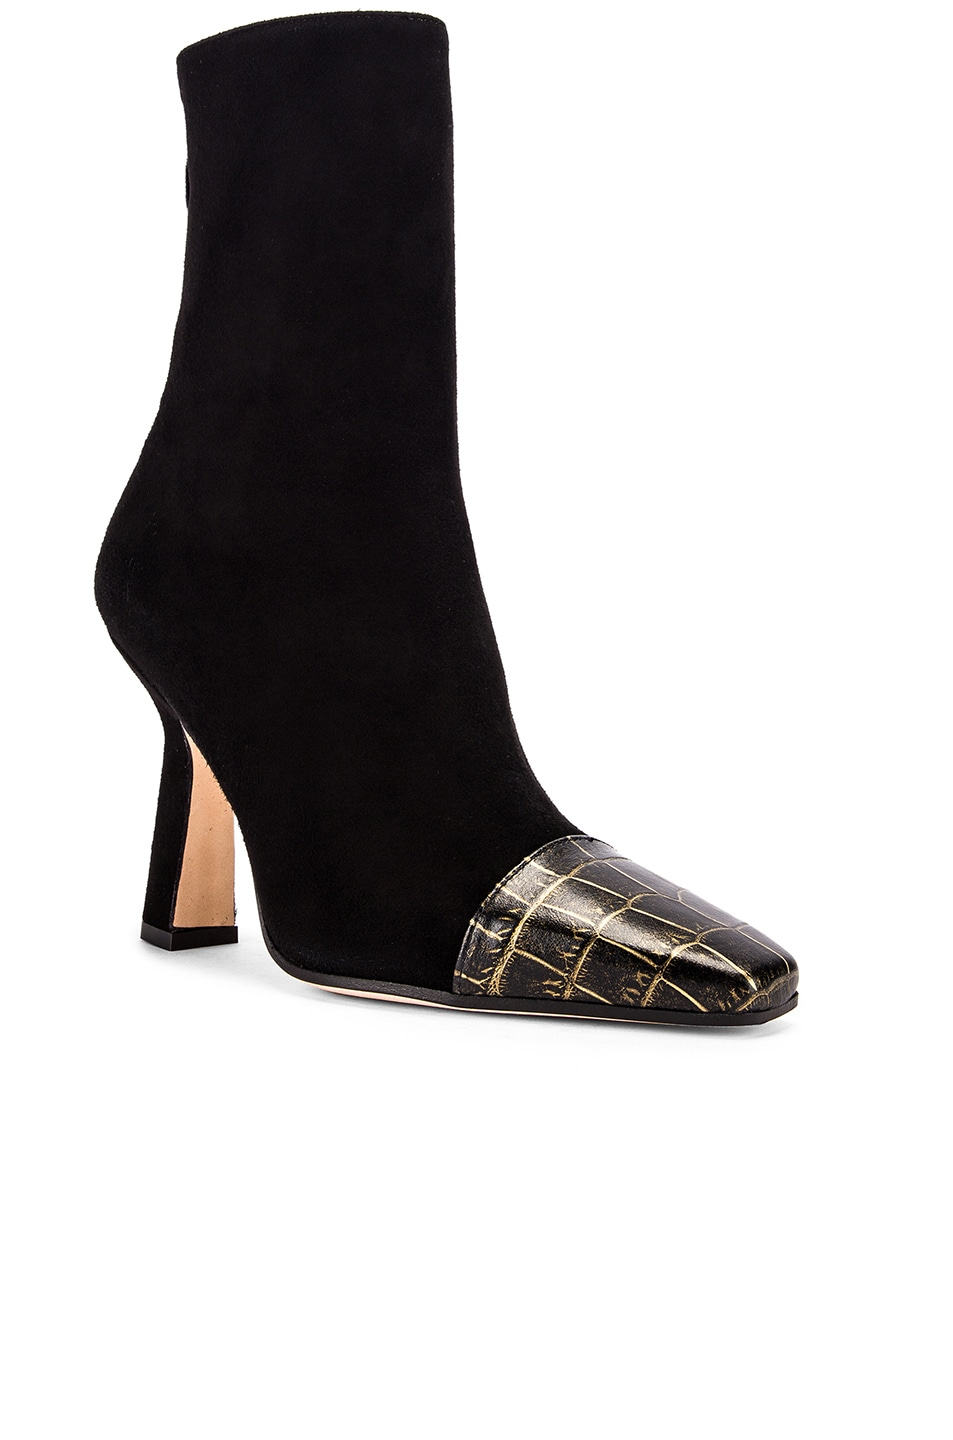 Image 2 of Paris Texas Suede and Croco Square Toe Ankle Boot in Black